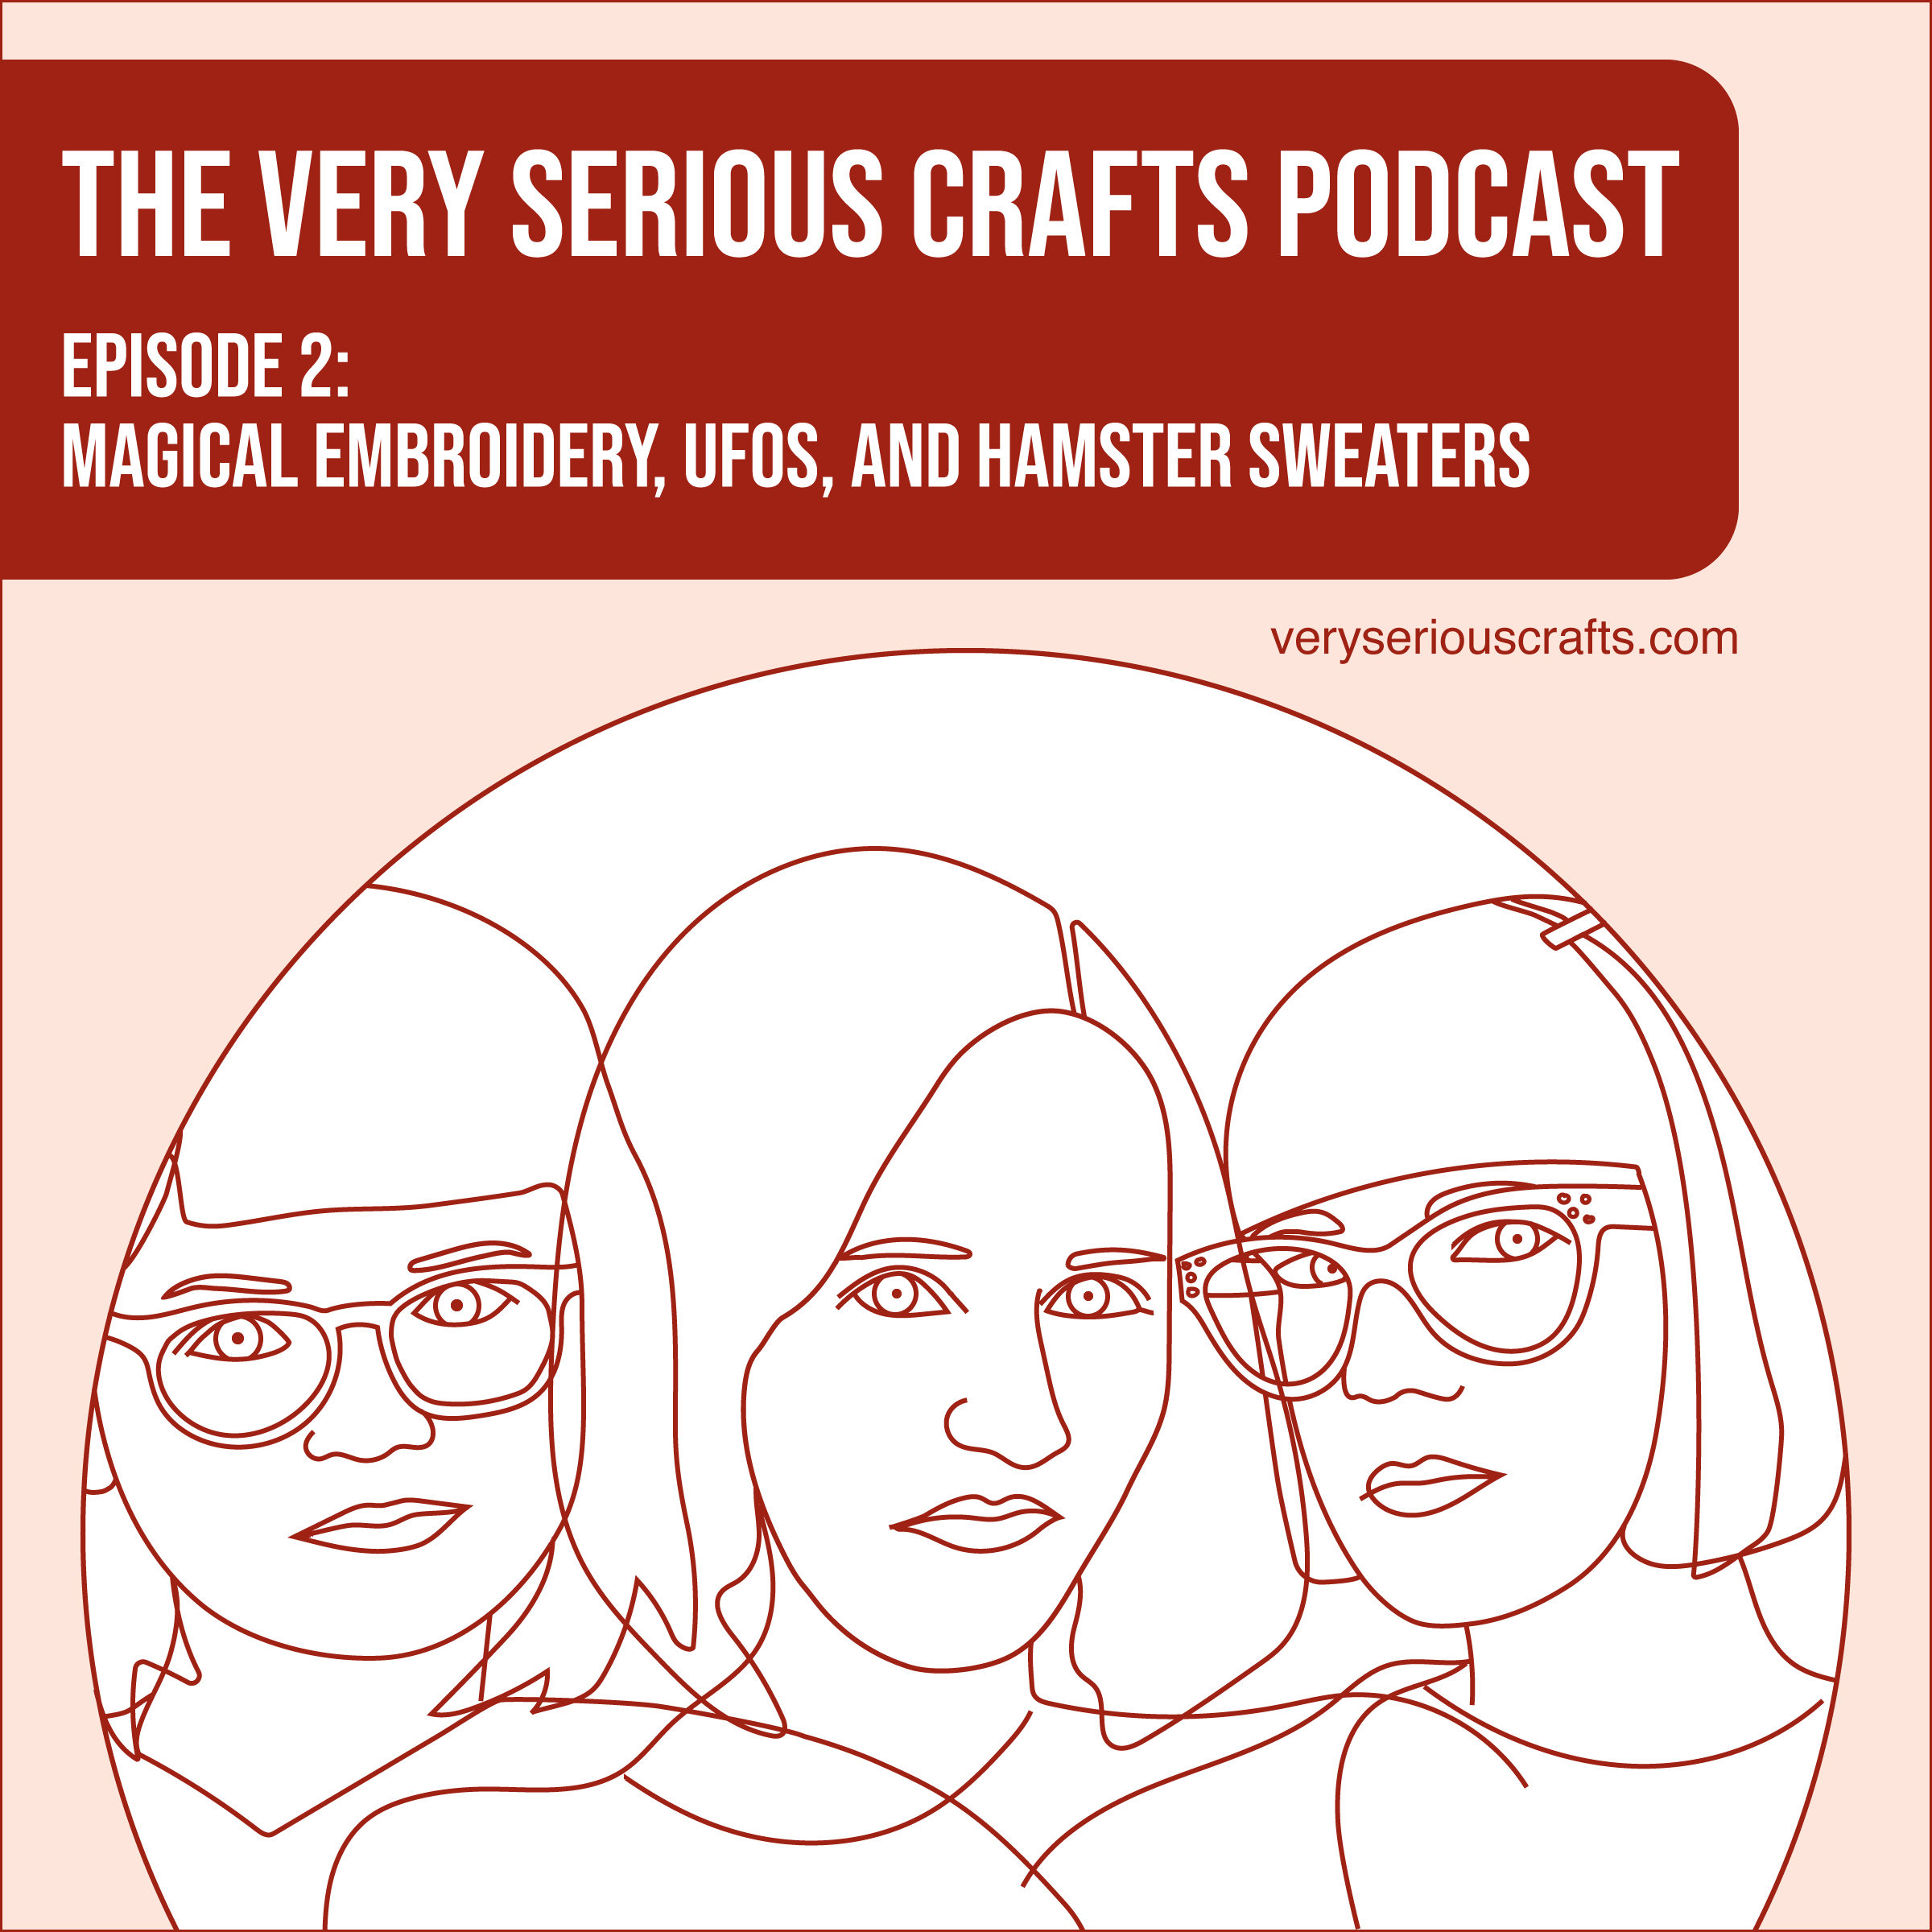 S1E02: Magical Embroidery, UFOs, and Hamster Sweaters